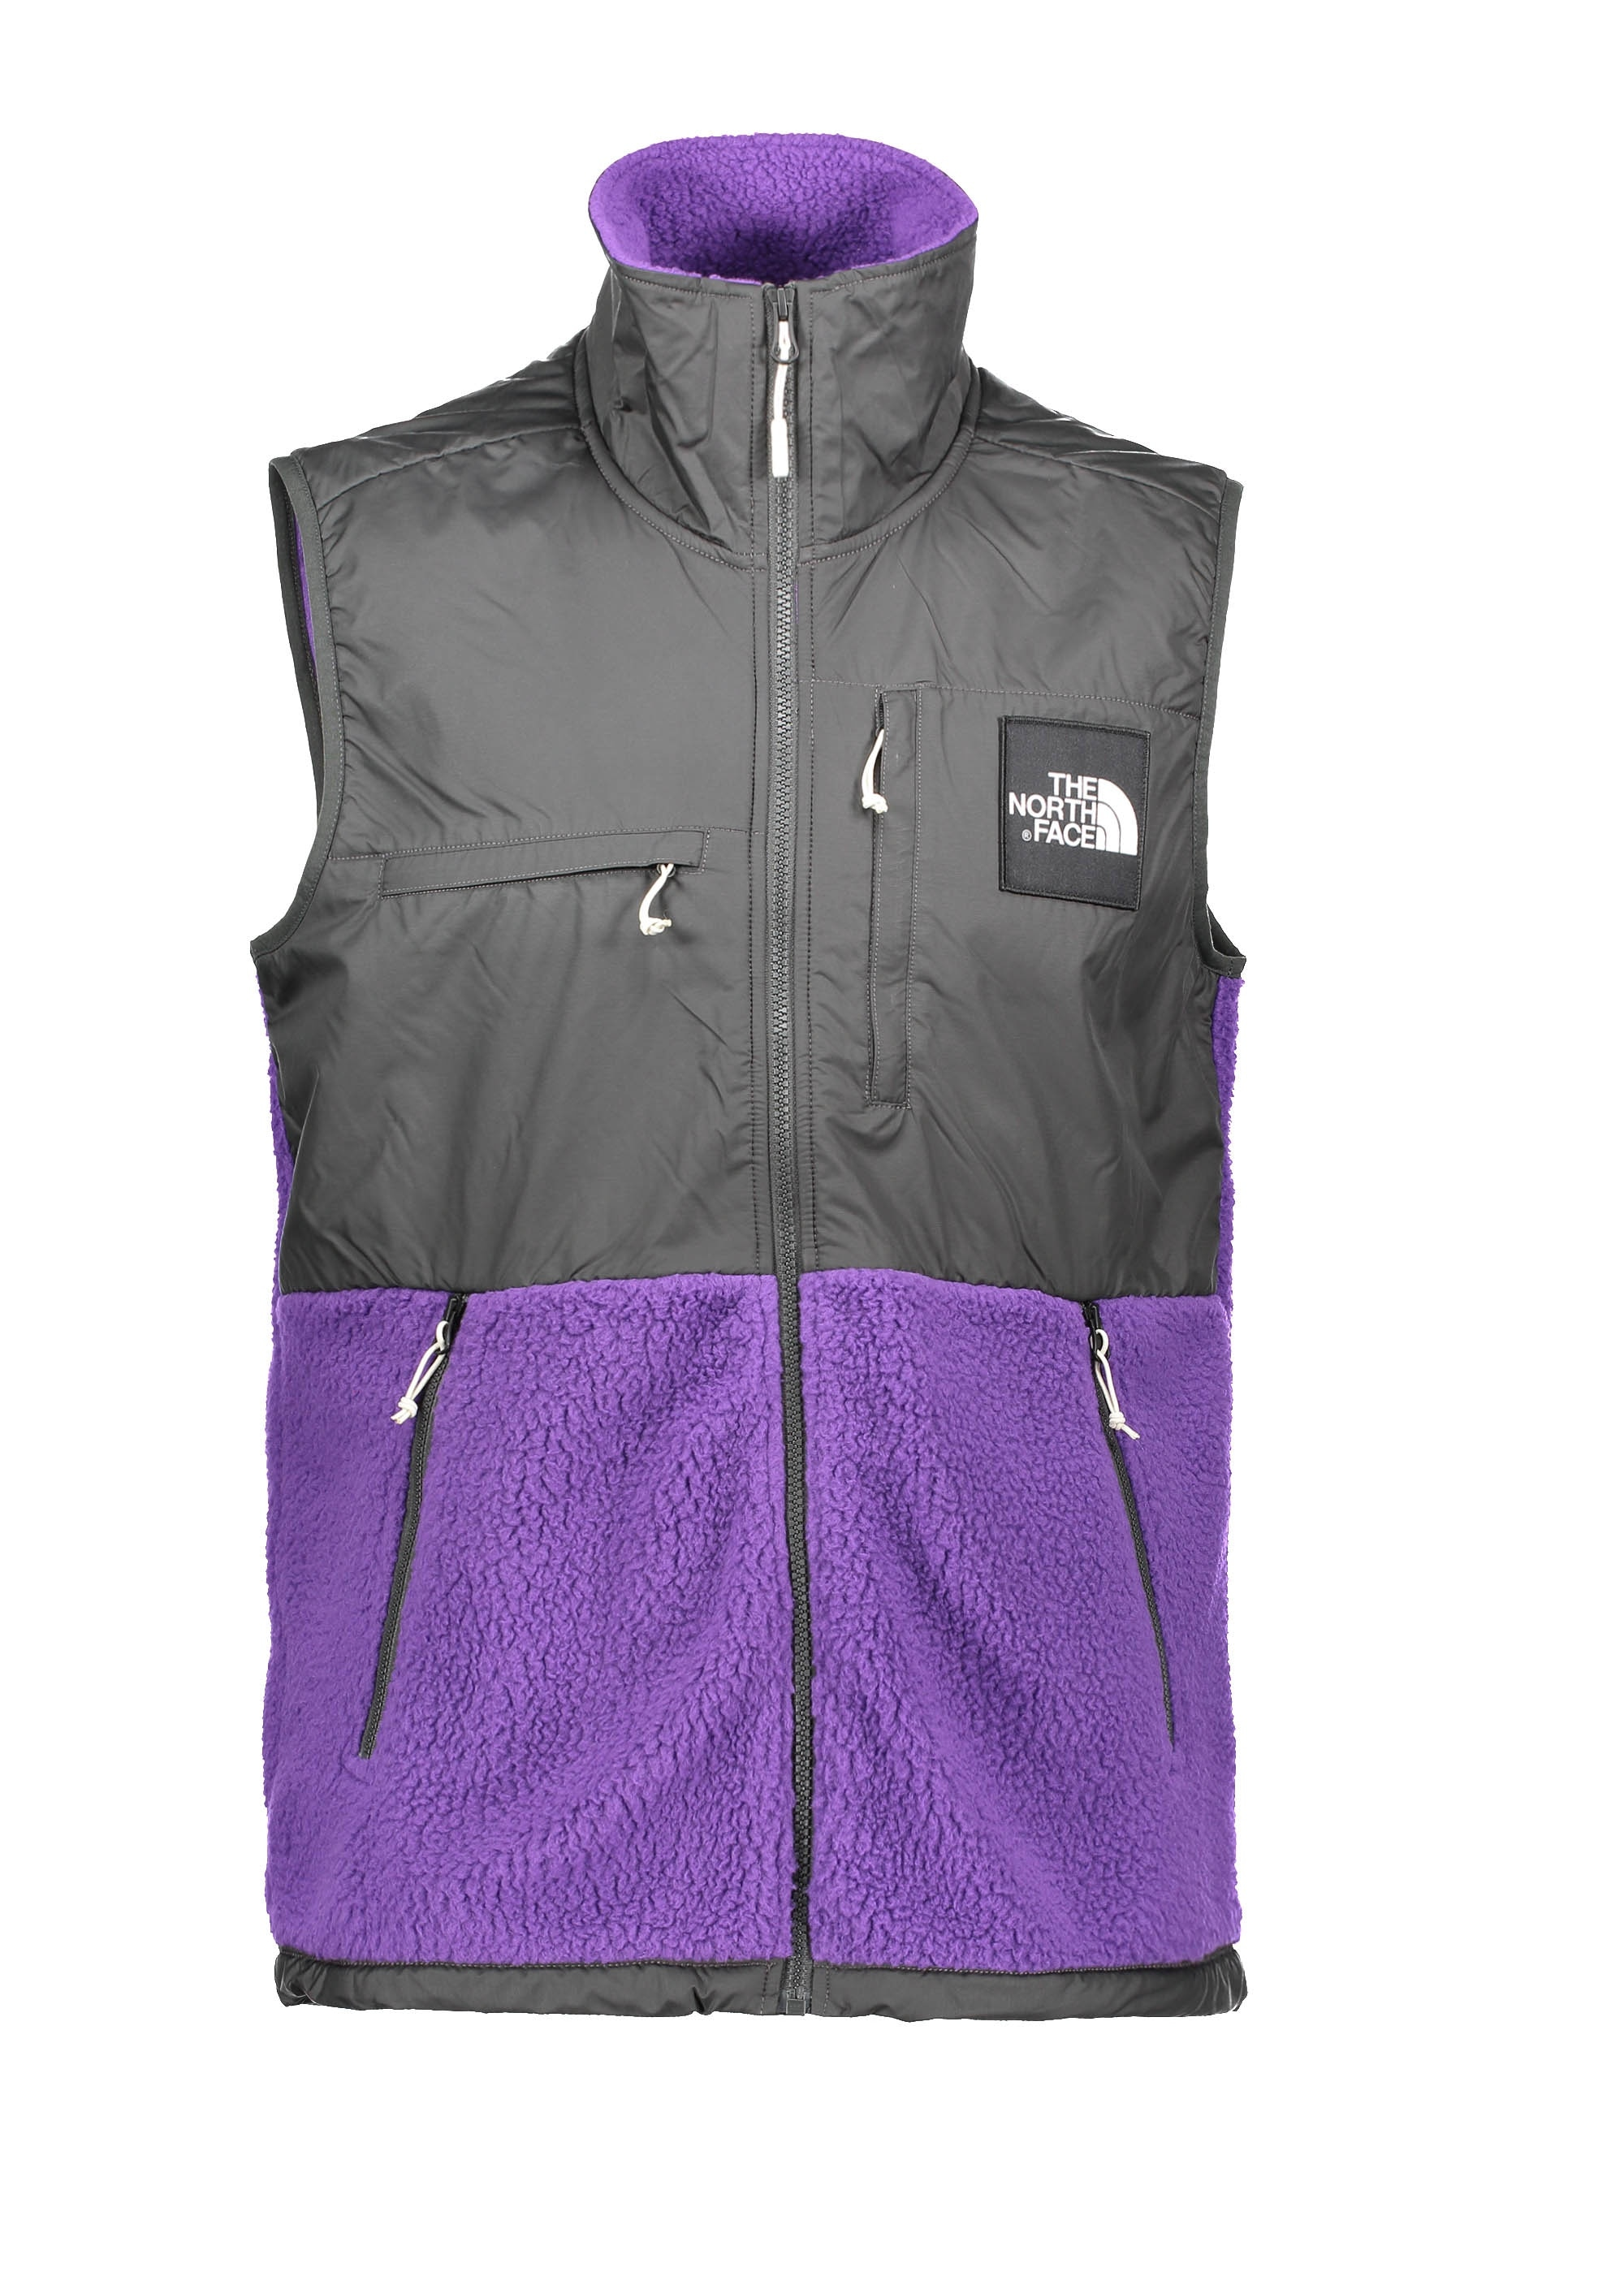 6e1e9dadab9d The North Face Denali Fleece Vest - Purple - Gilets from Triads UK